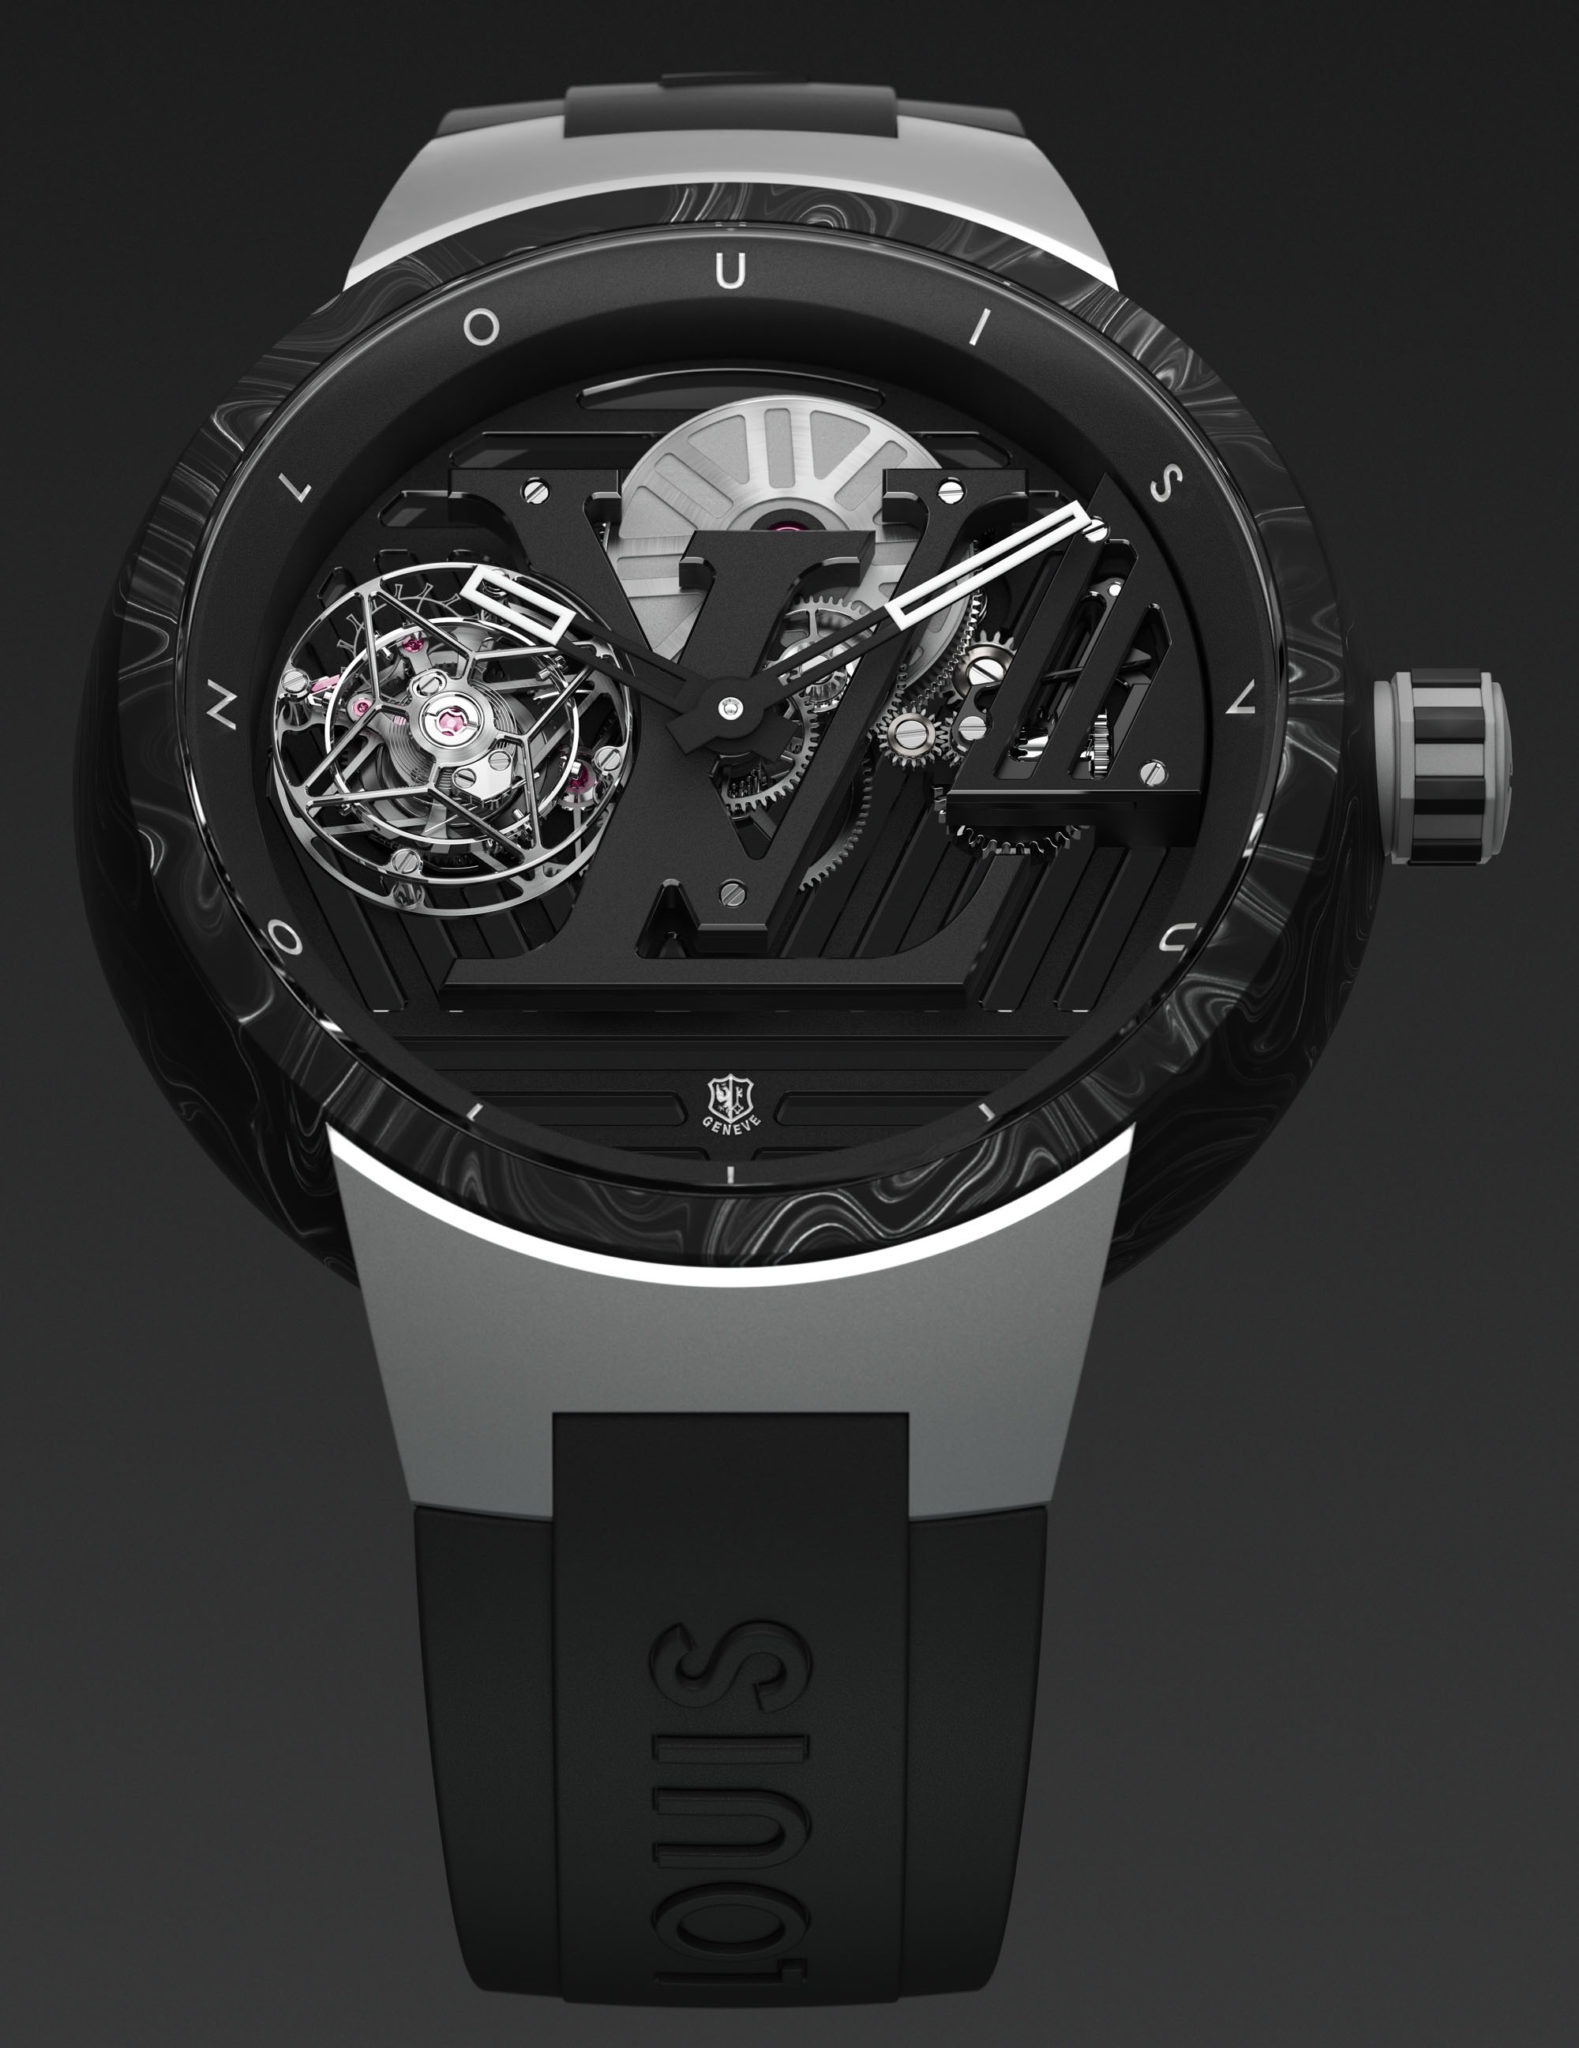 Louis Vuitton Tambour Curve Flying Tourbillon Poinçon de Genève